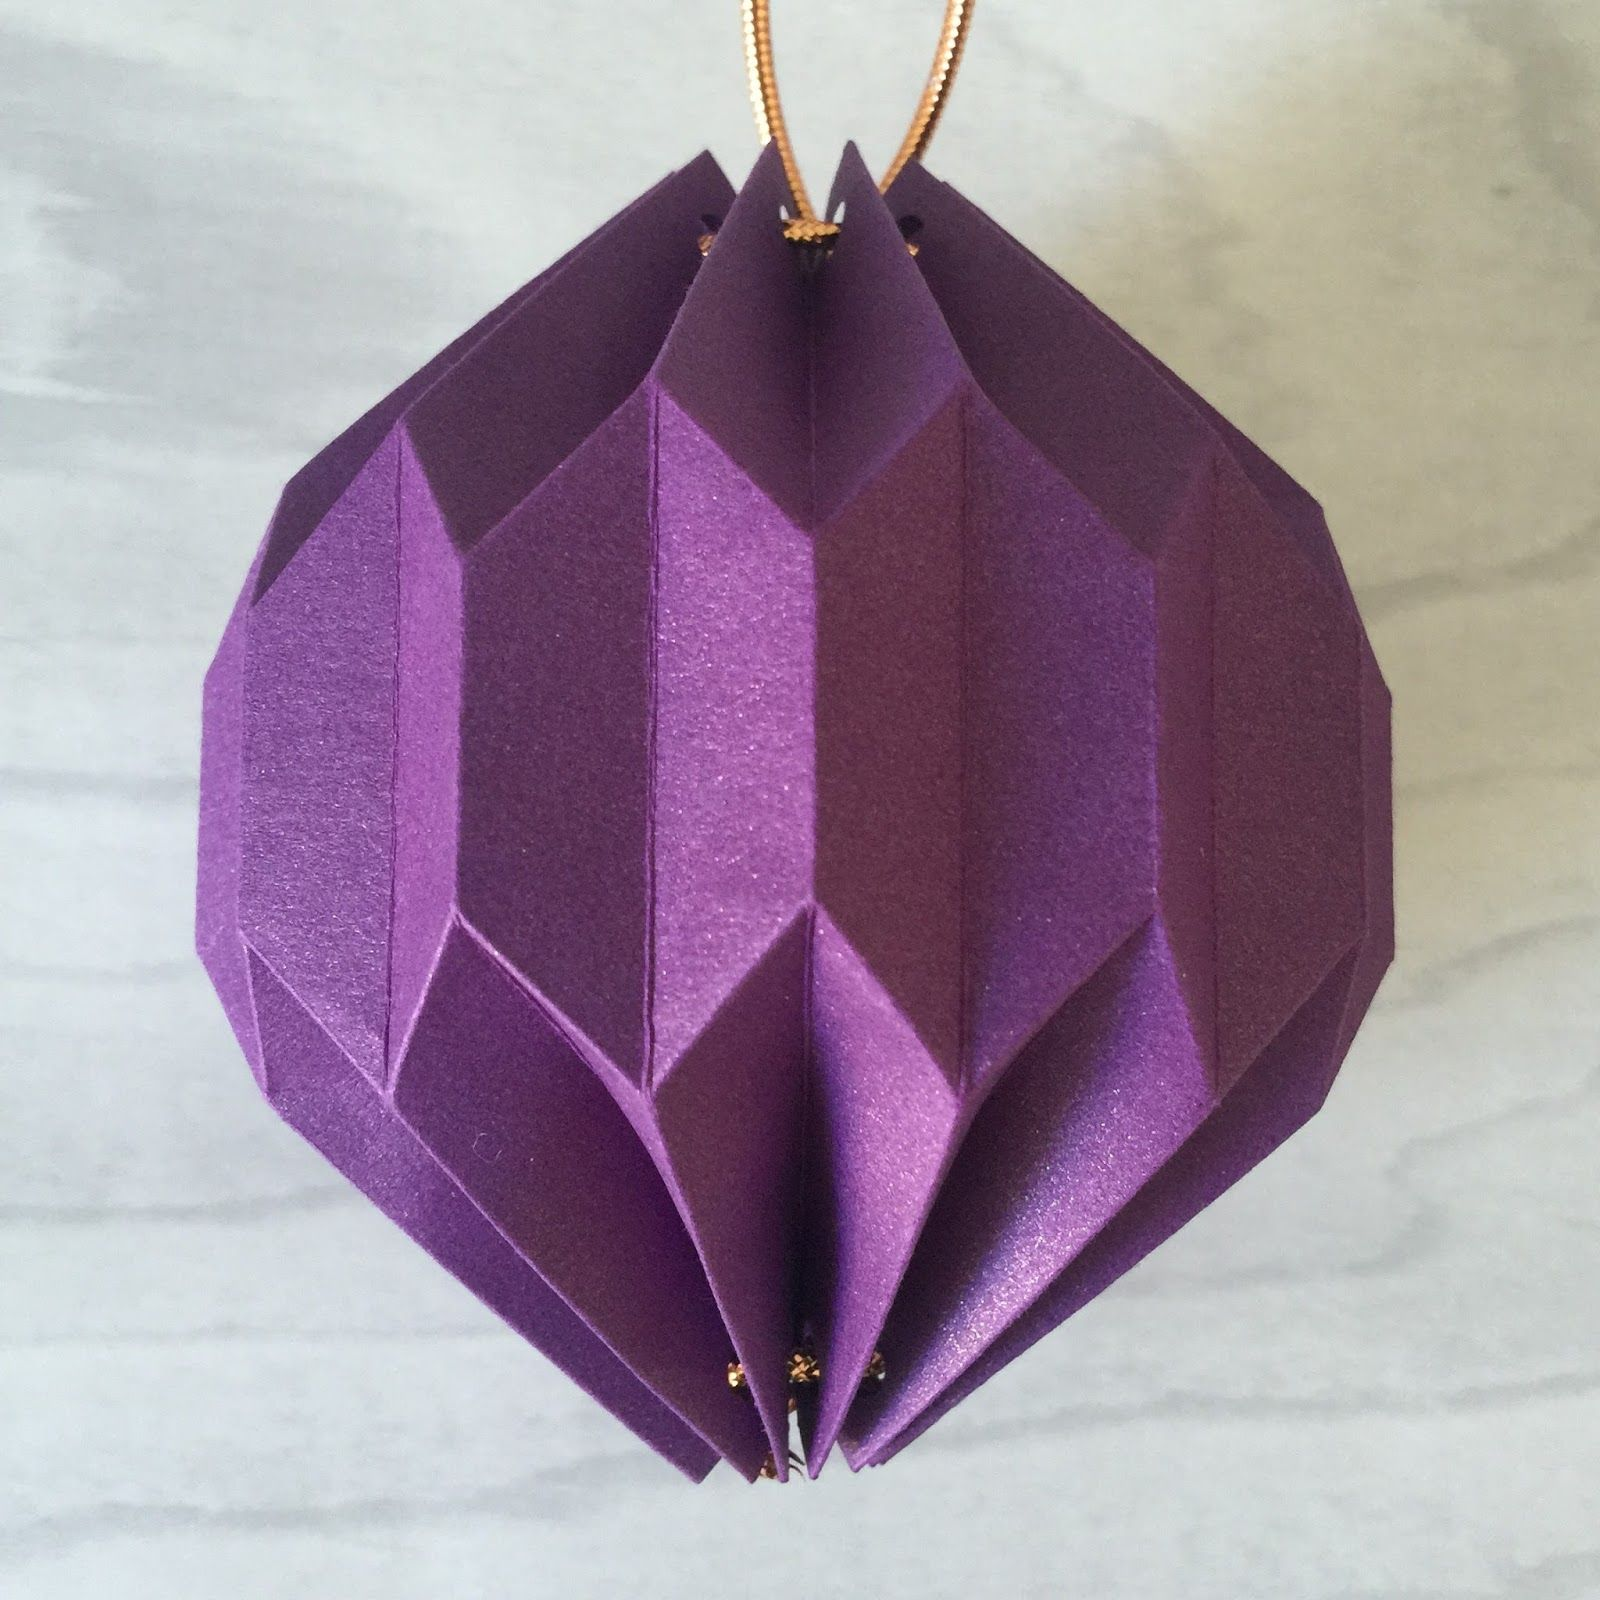 Completed Second Origami Lantern From Tutorial Using Silhouette